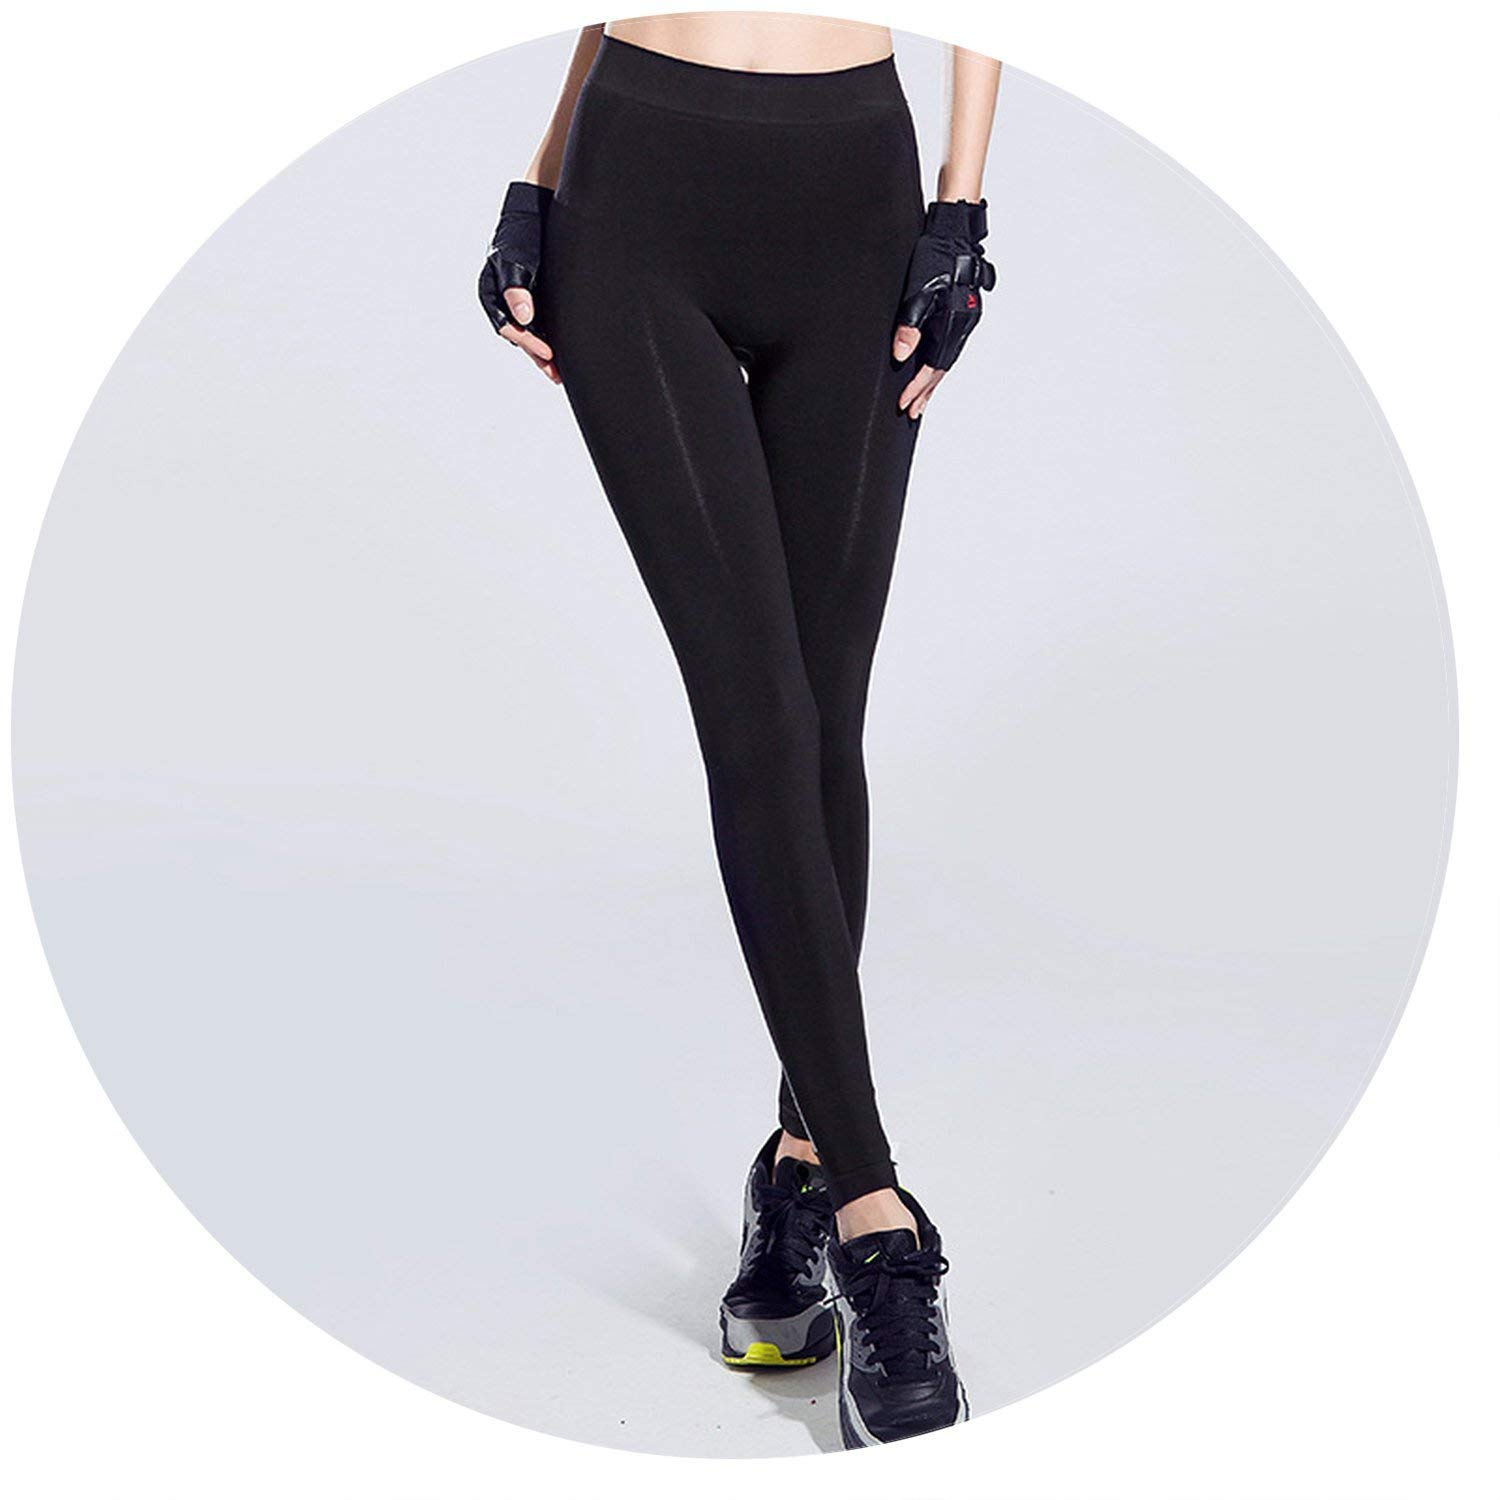 9c68abbbf9a47e Get Quotations · Women Yoga Pants Fitness Sports Leggings Solidwear Push up  Pants Athletic